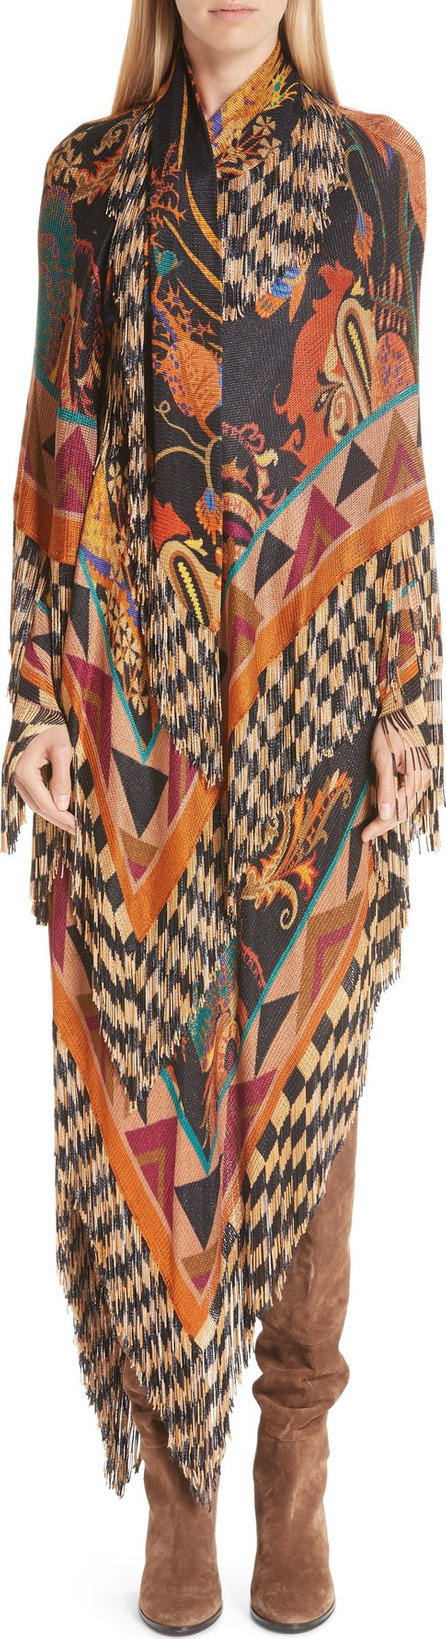 Etro Mixed Print Fringe Knit Dress